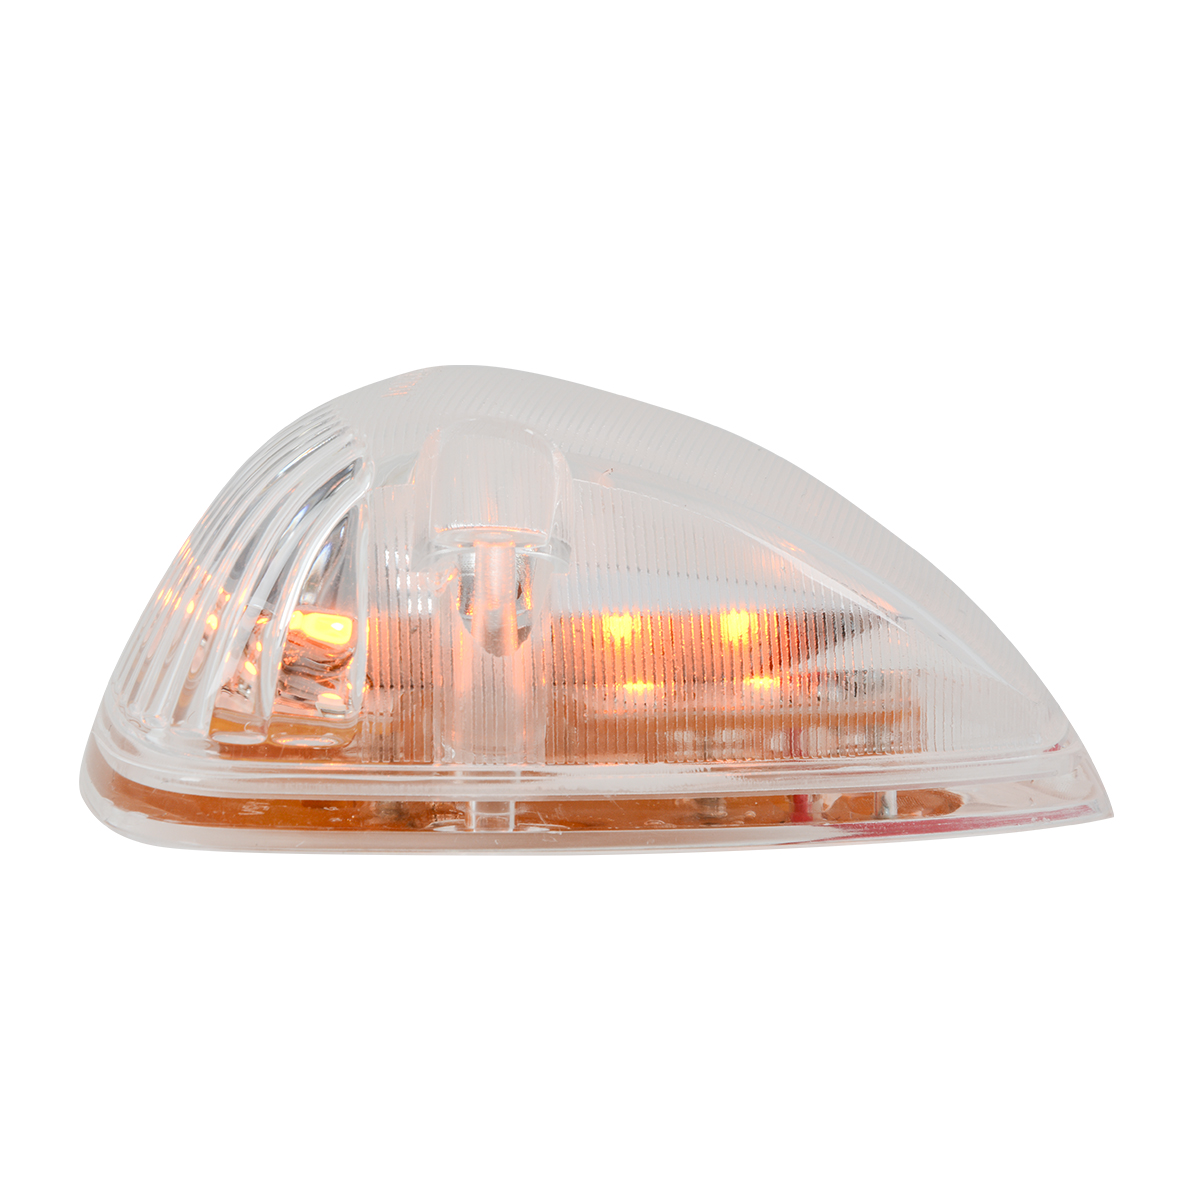 82261 Triangle Cab Light for Pickup/SUV/RV/Bus